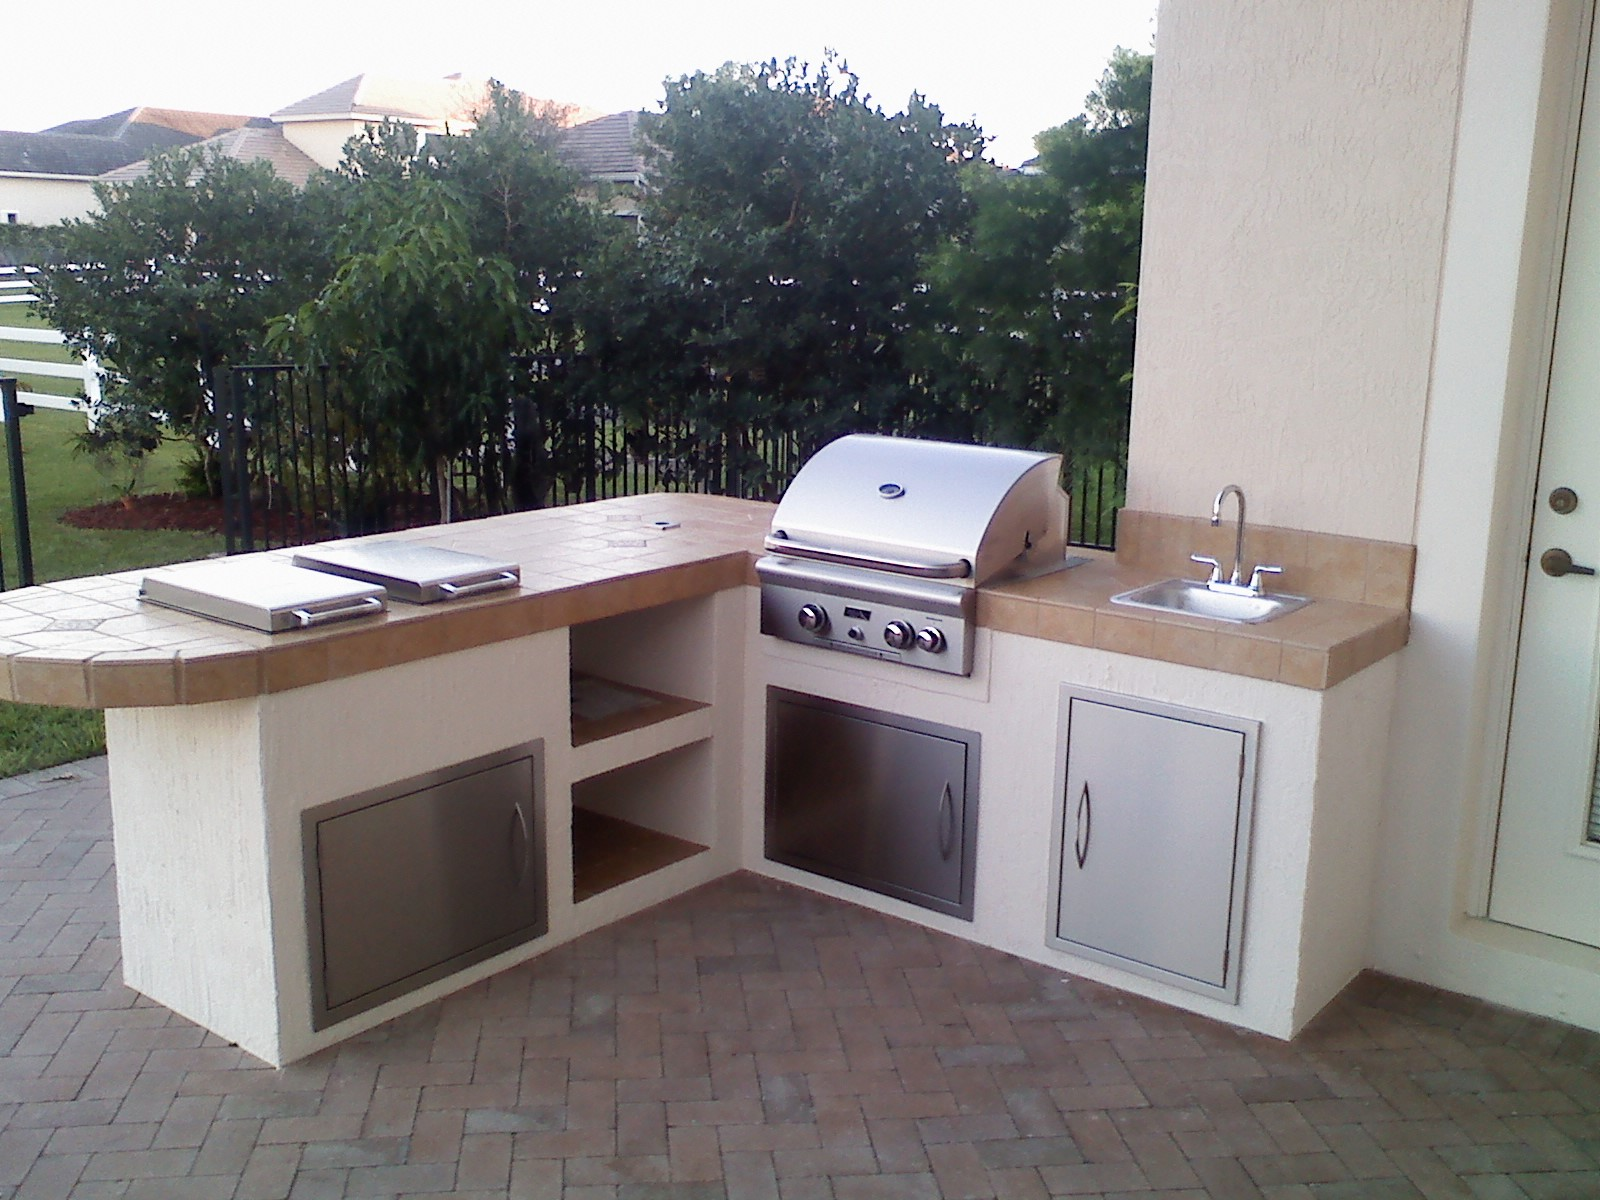 Outdoor Bbq Grill Islands Outdoor Kitchen Building And Design